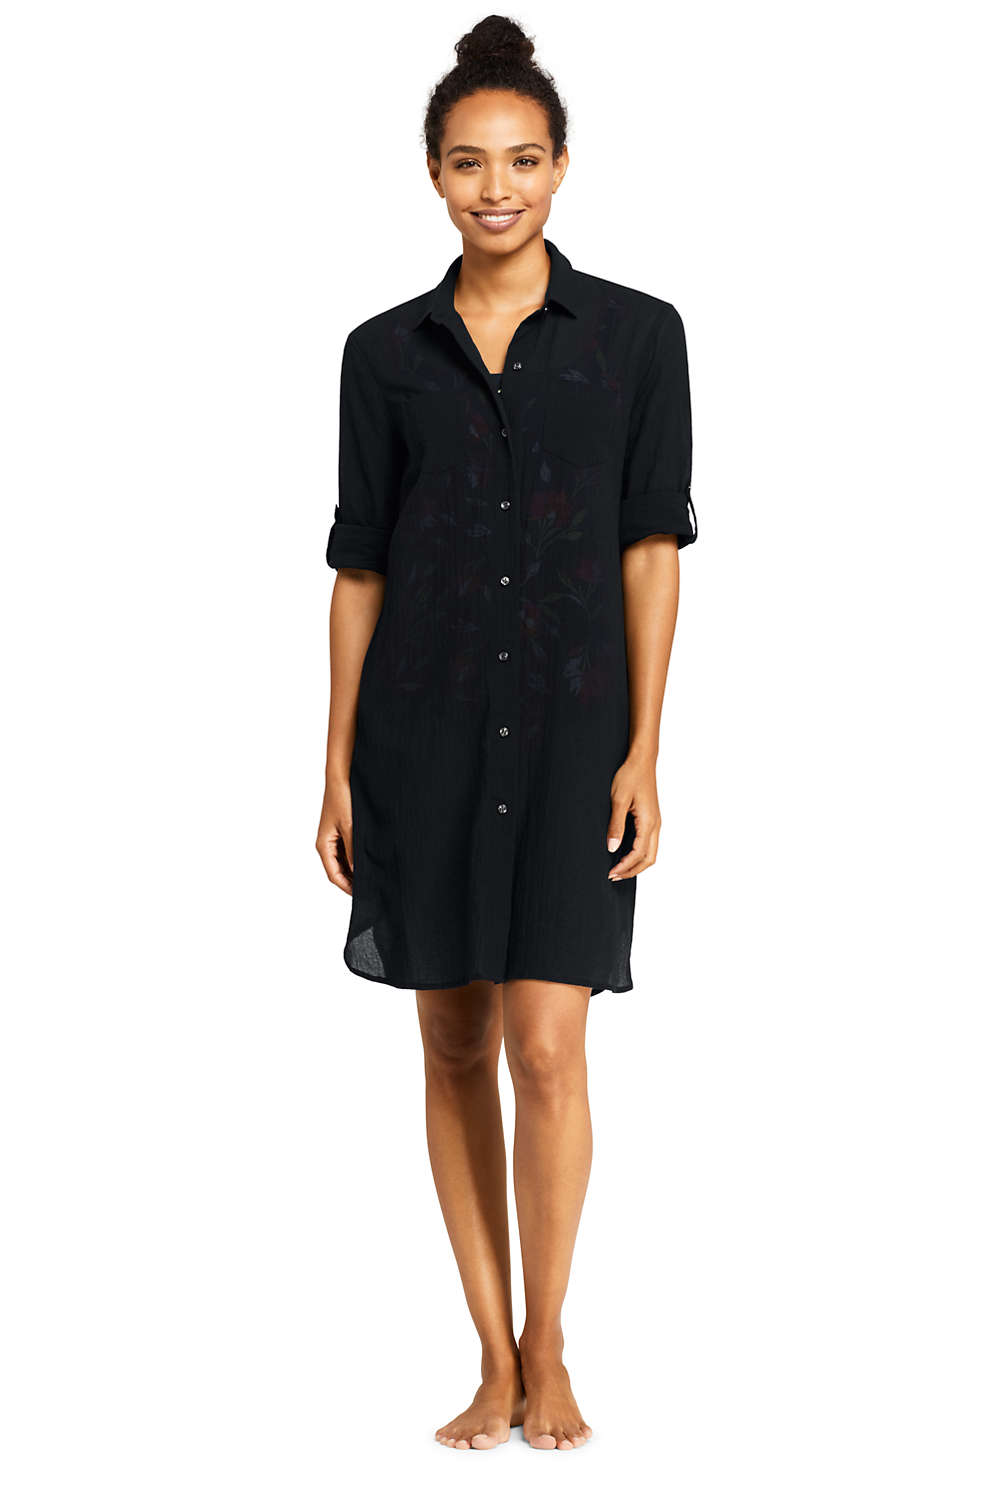 57579eb737f68 Women's Cotton Button Down Shirt Dress Swim Cover-up from Lands' End